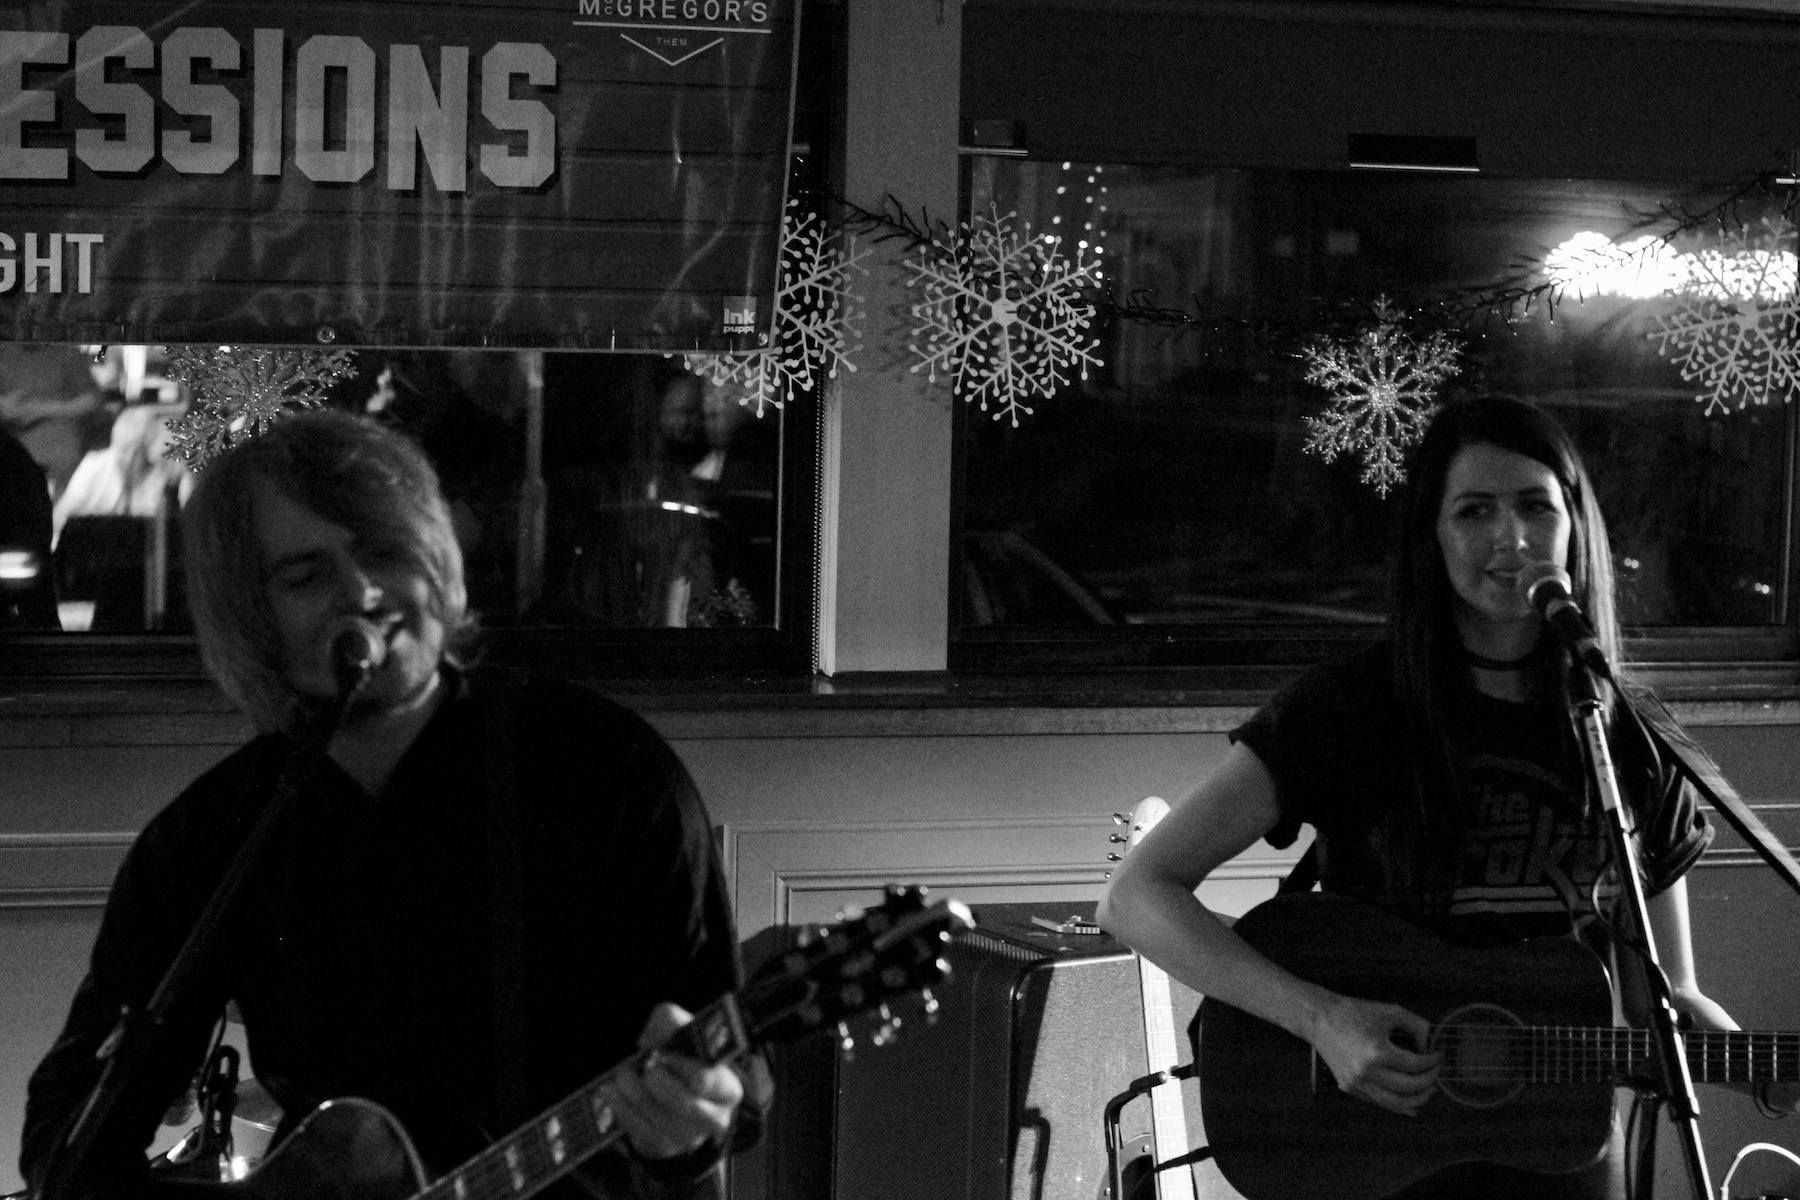 Lauren MacKenzie at The Porch Sessions Inverness December 20183046 - The Porch Sessions, 8/12/2018 - Images